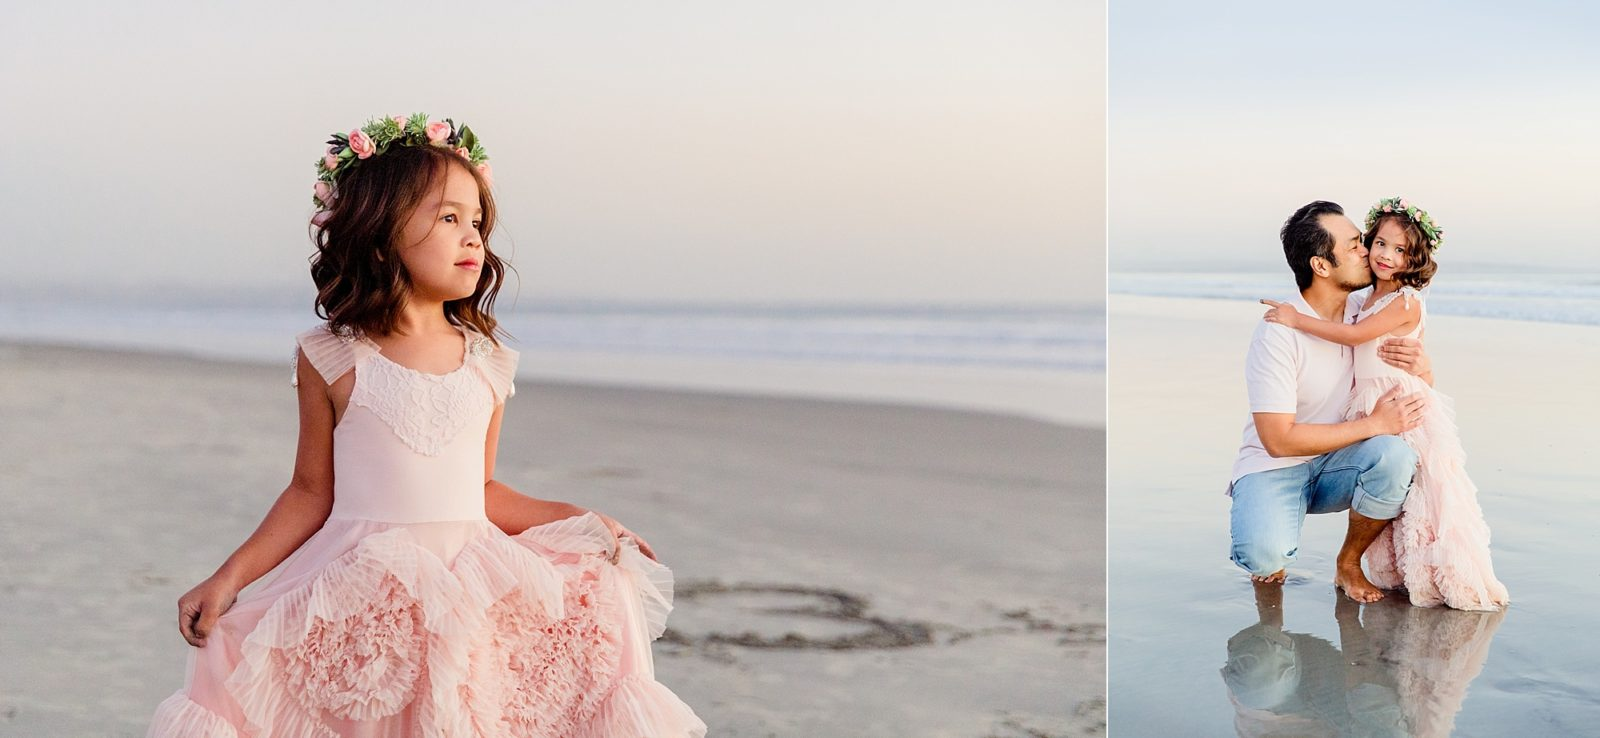 San Diego Beach Photographer | San Diego Beach Photography